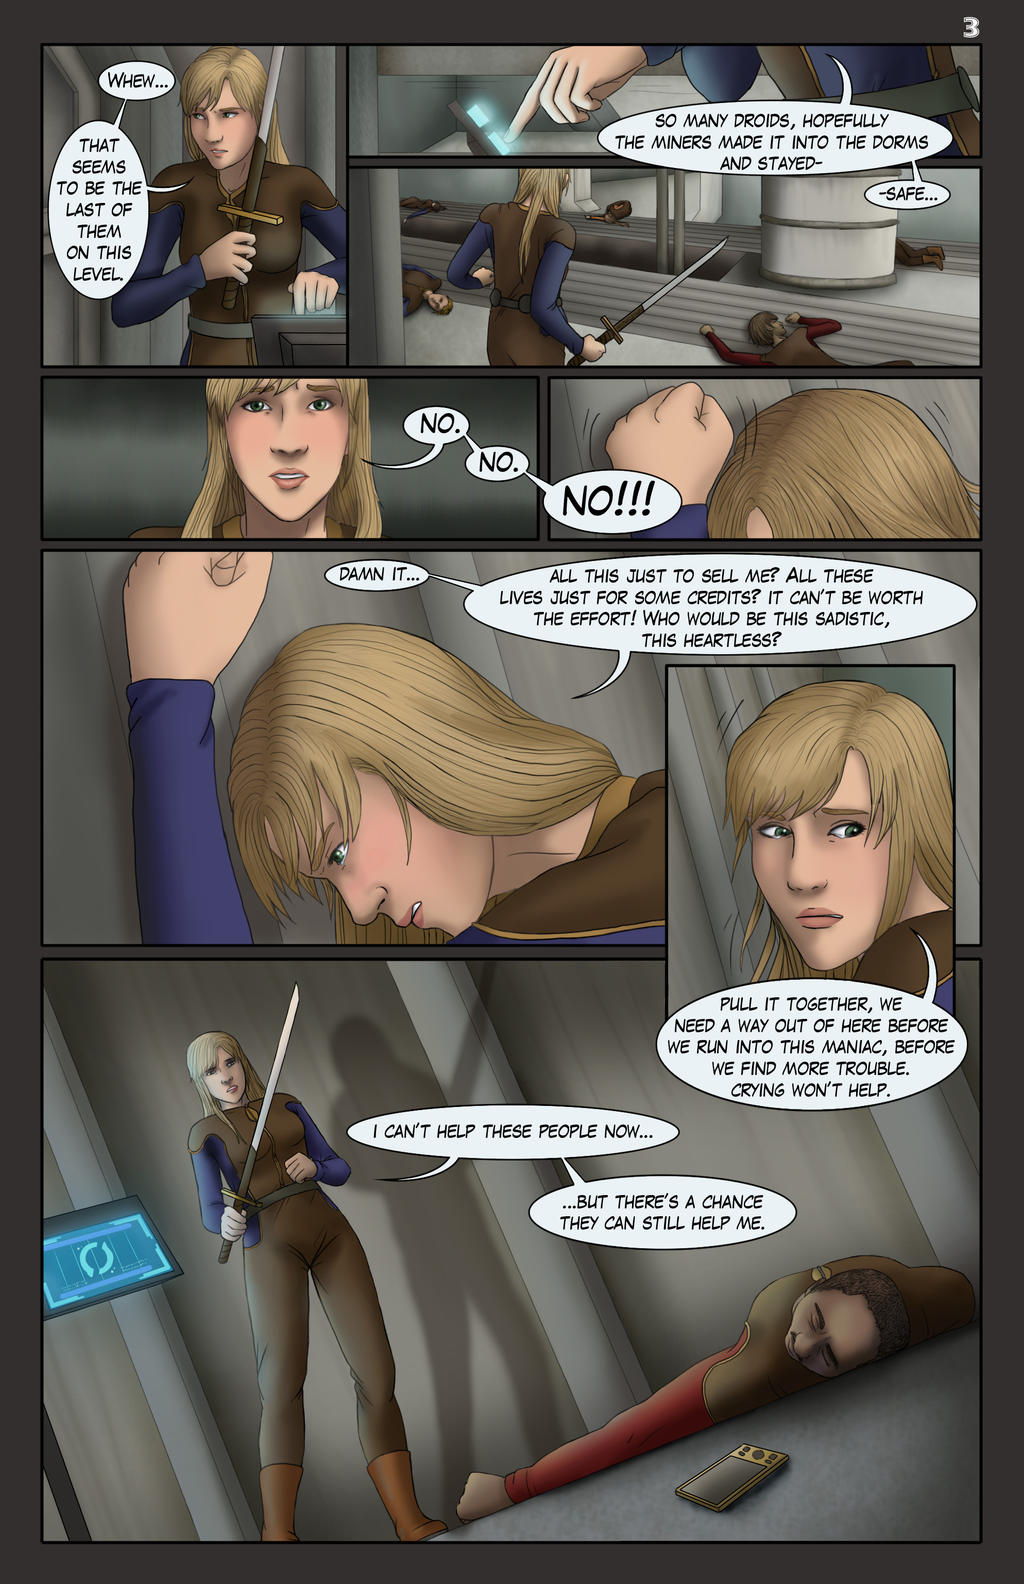 Unfinished Tales of the Exile, Issue 3, Page 3 by AshleyKayley